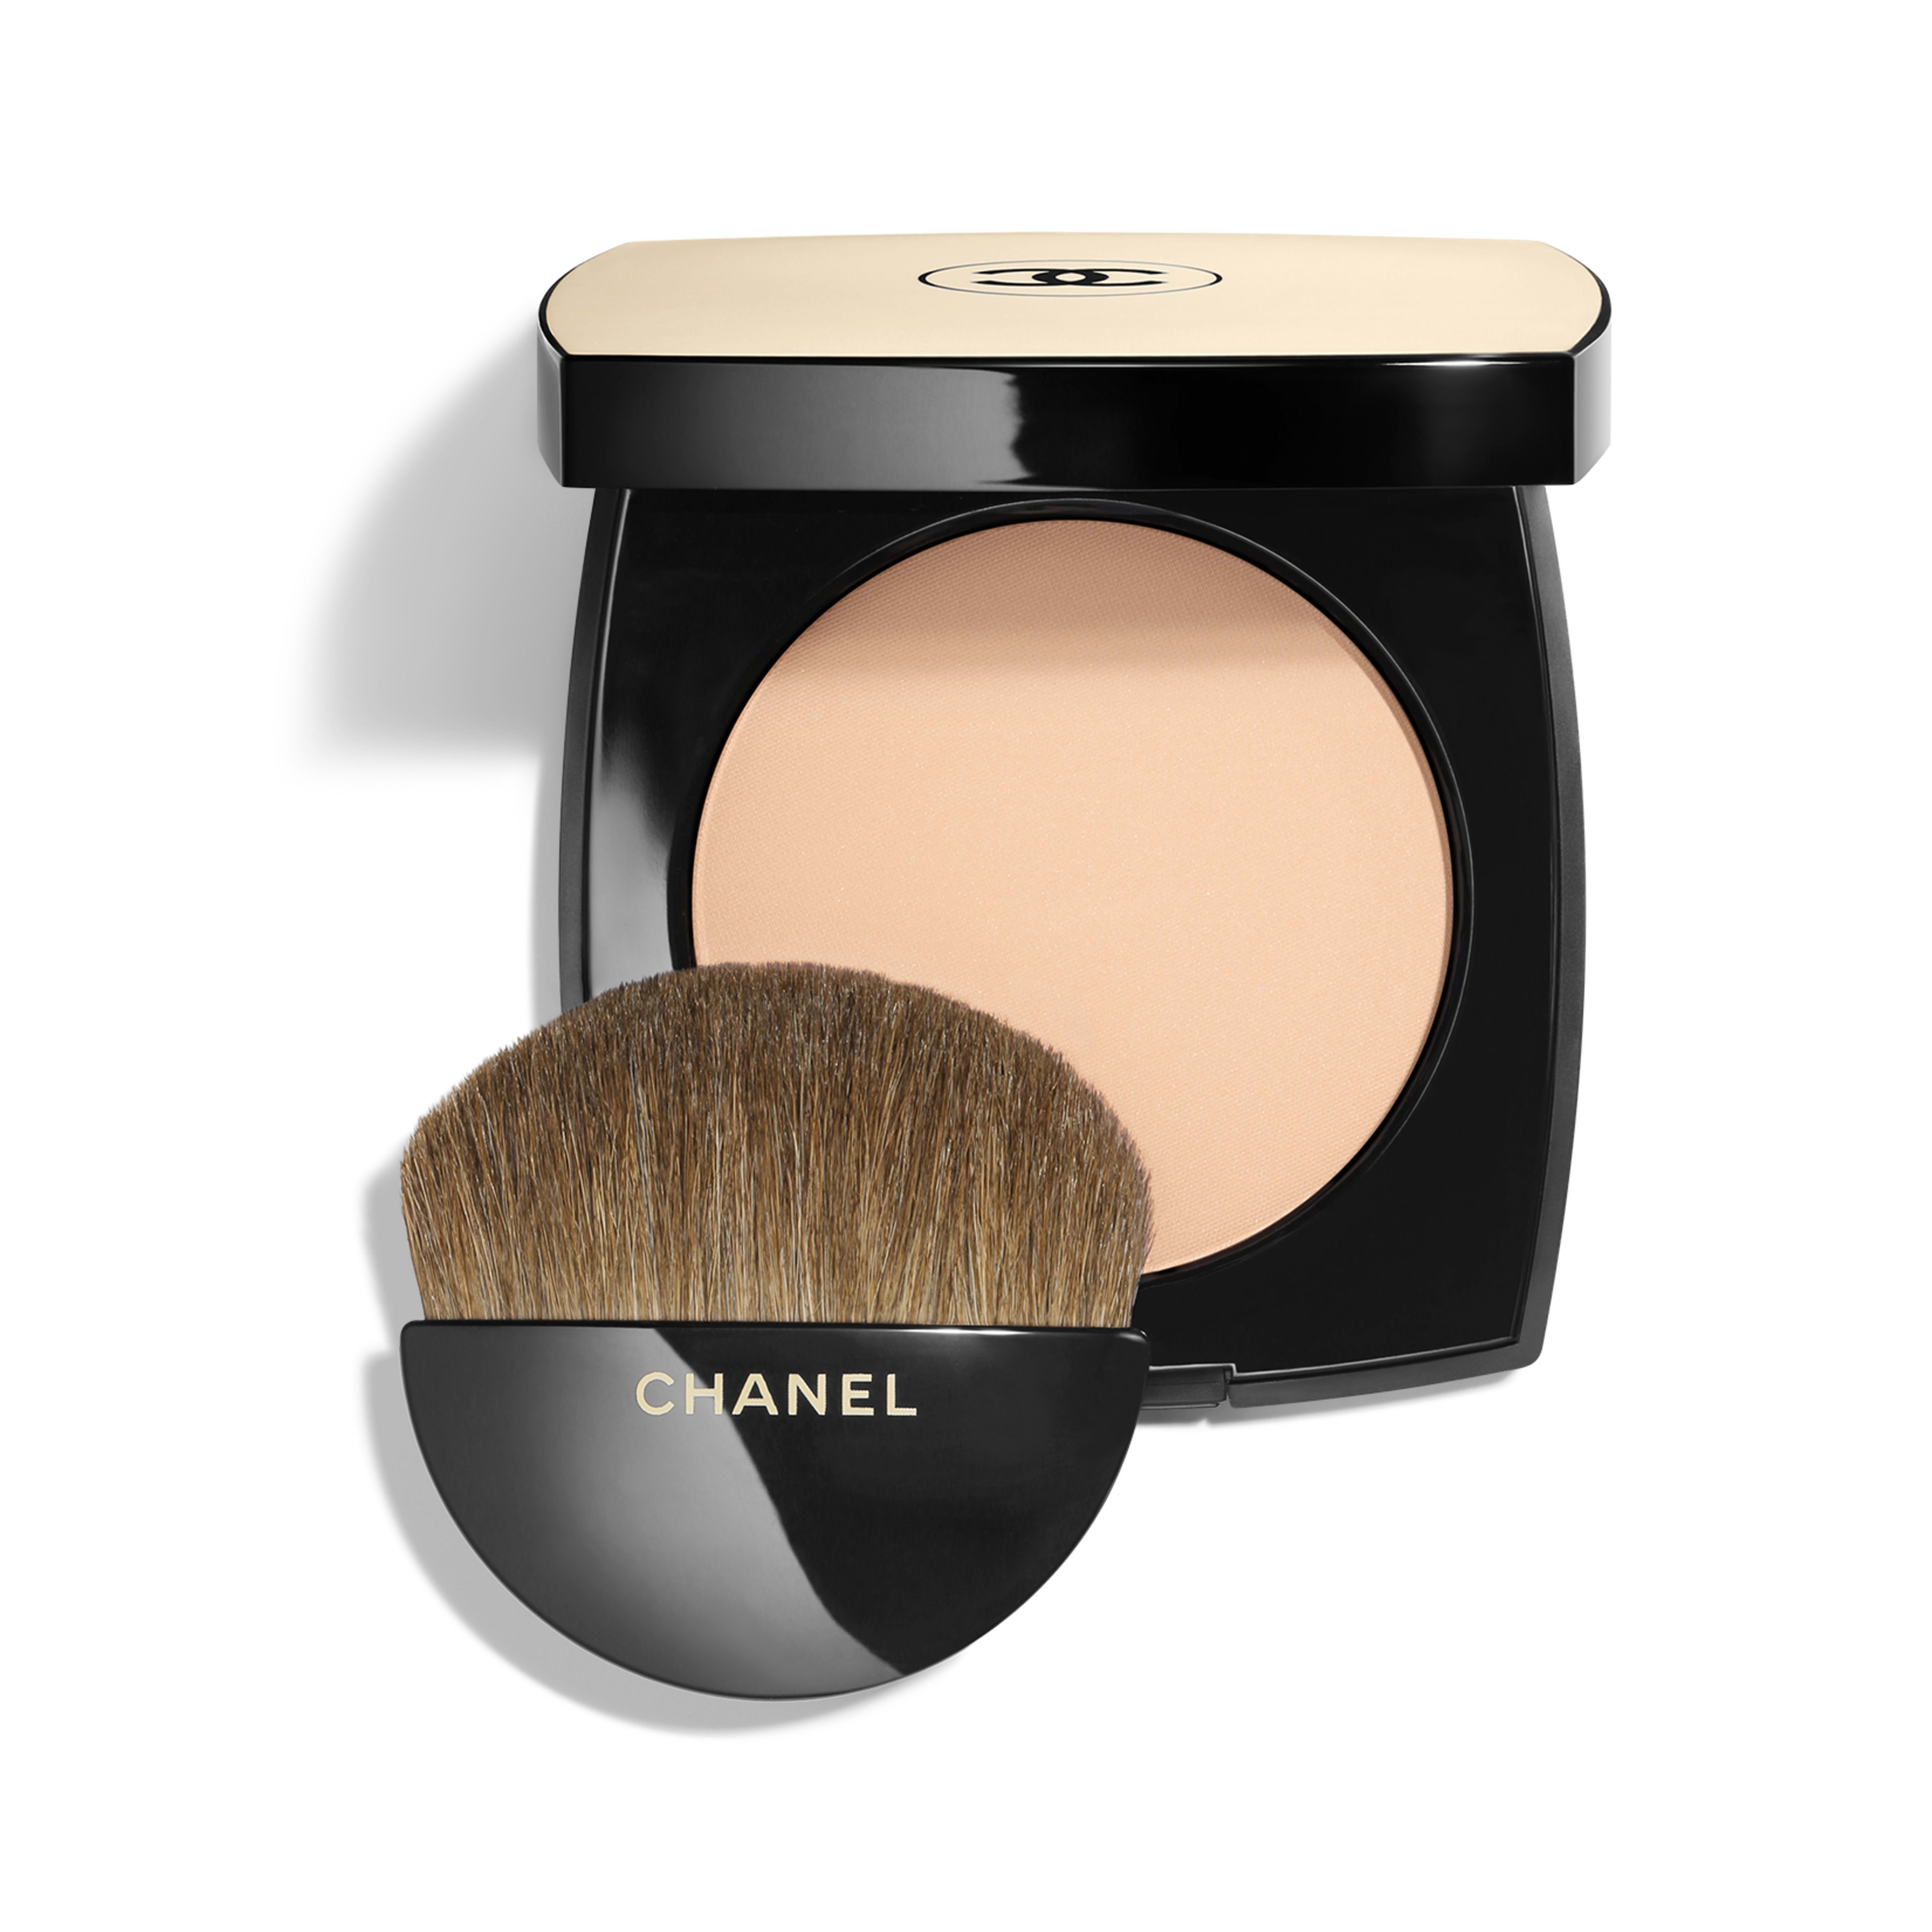 Chanel - Les Beiges Healthy Glow Sheer Colour Broad Spectrum SPF 15